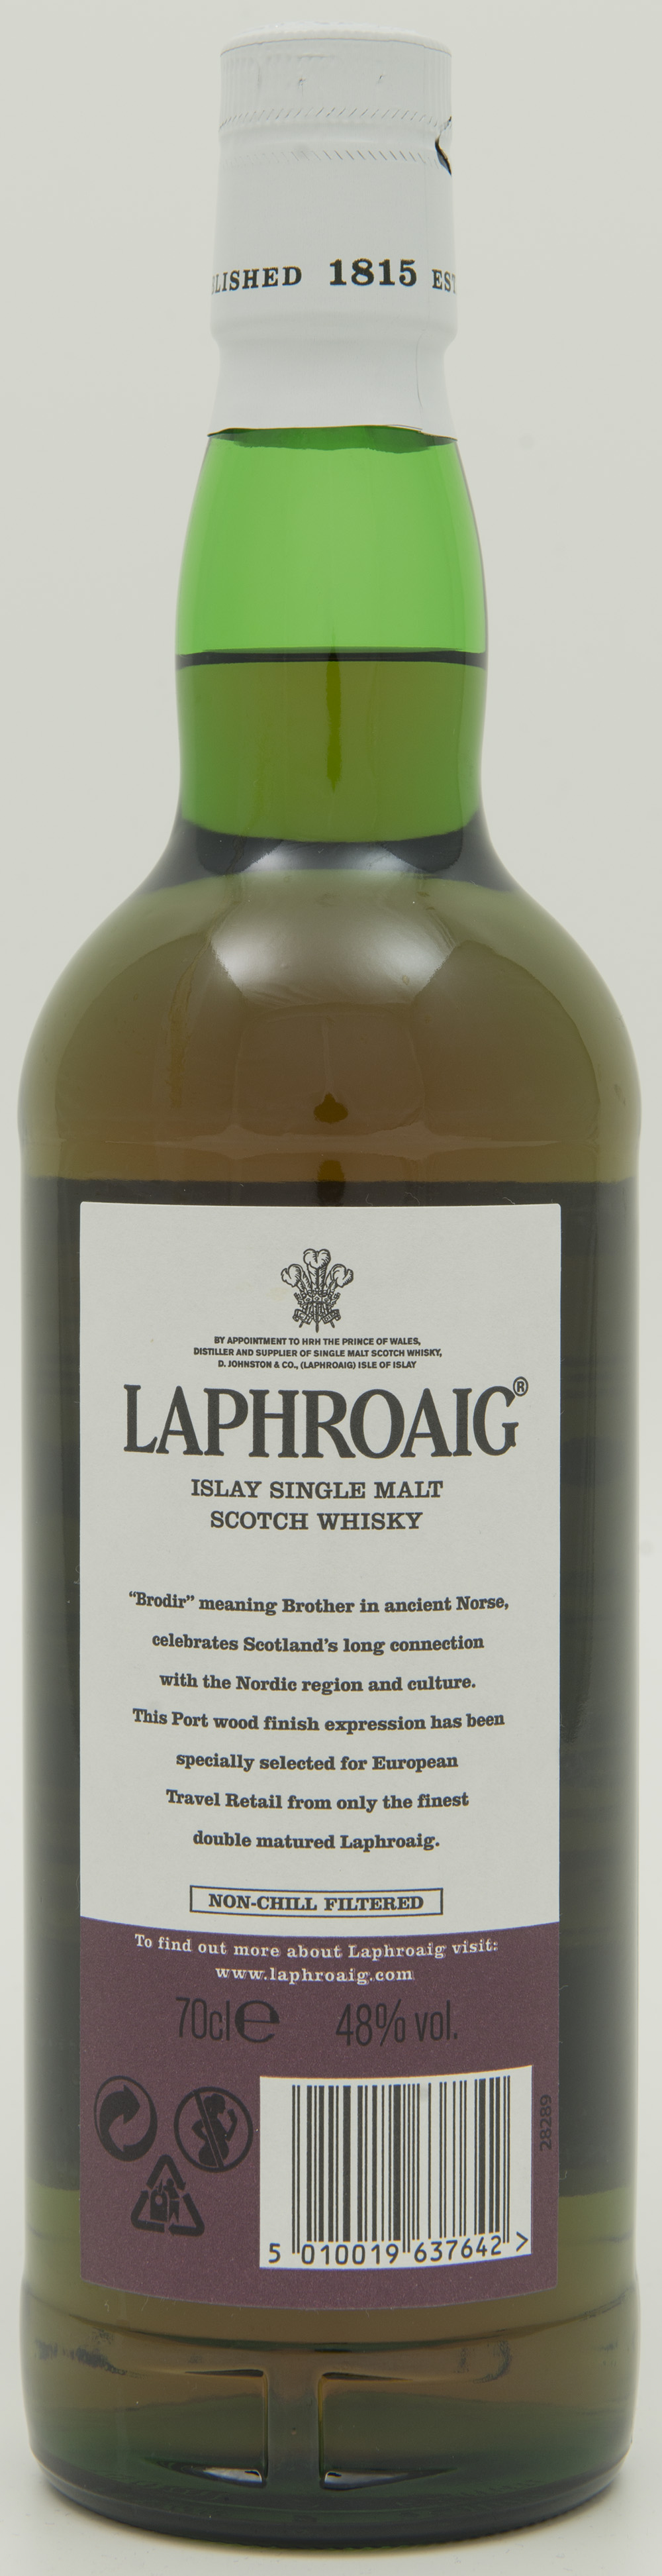 Billede: DSC_6446 - Laphroaig Brodir Port Wood Finish - Batch 001 - bottle back.jpg